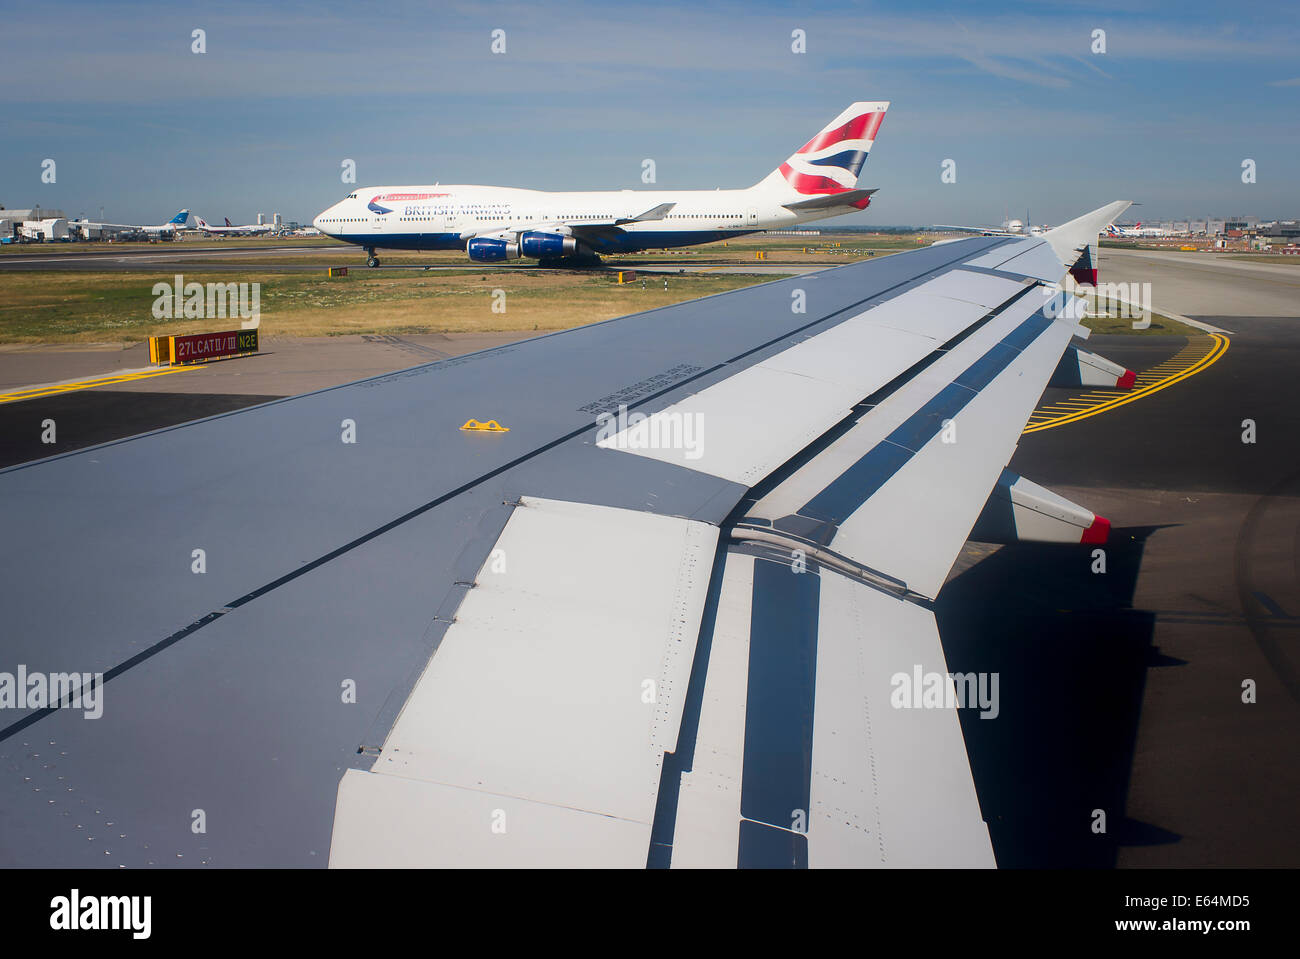 Wings of flight. View of airfileld with aircraft taxying in UK - Stock Image